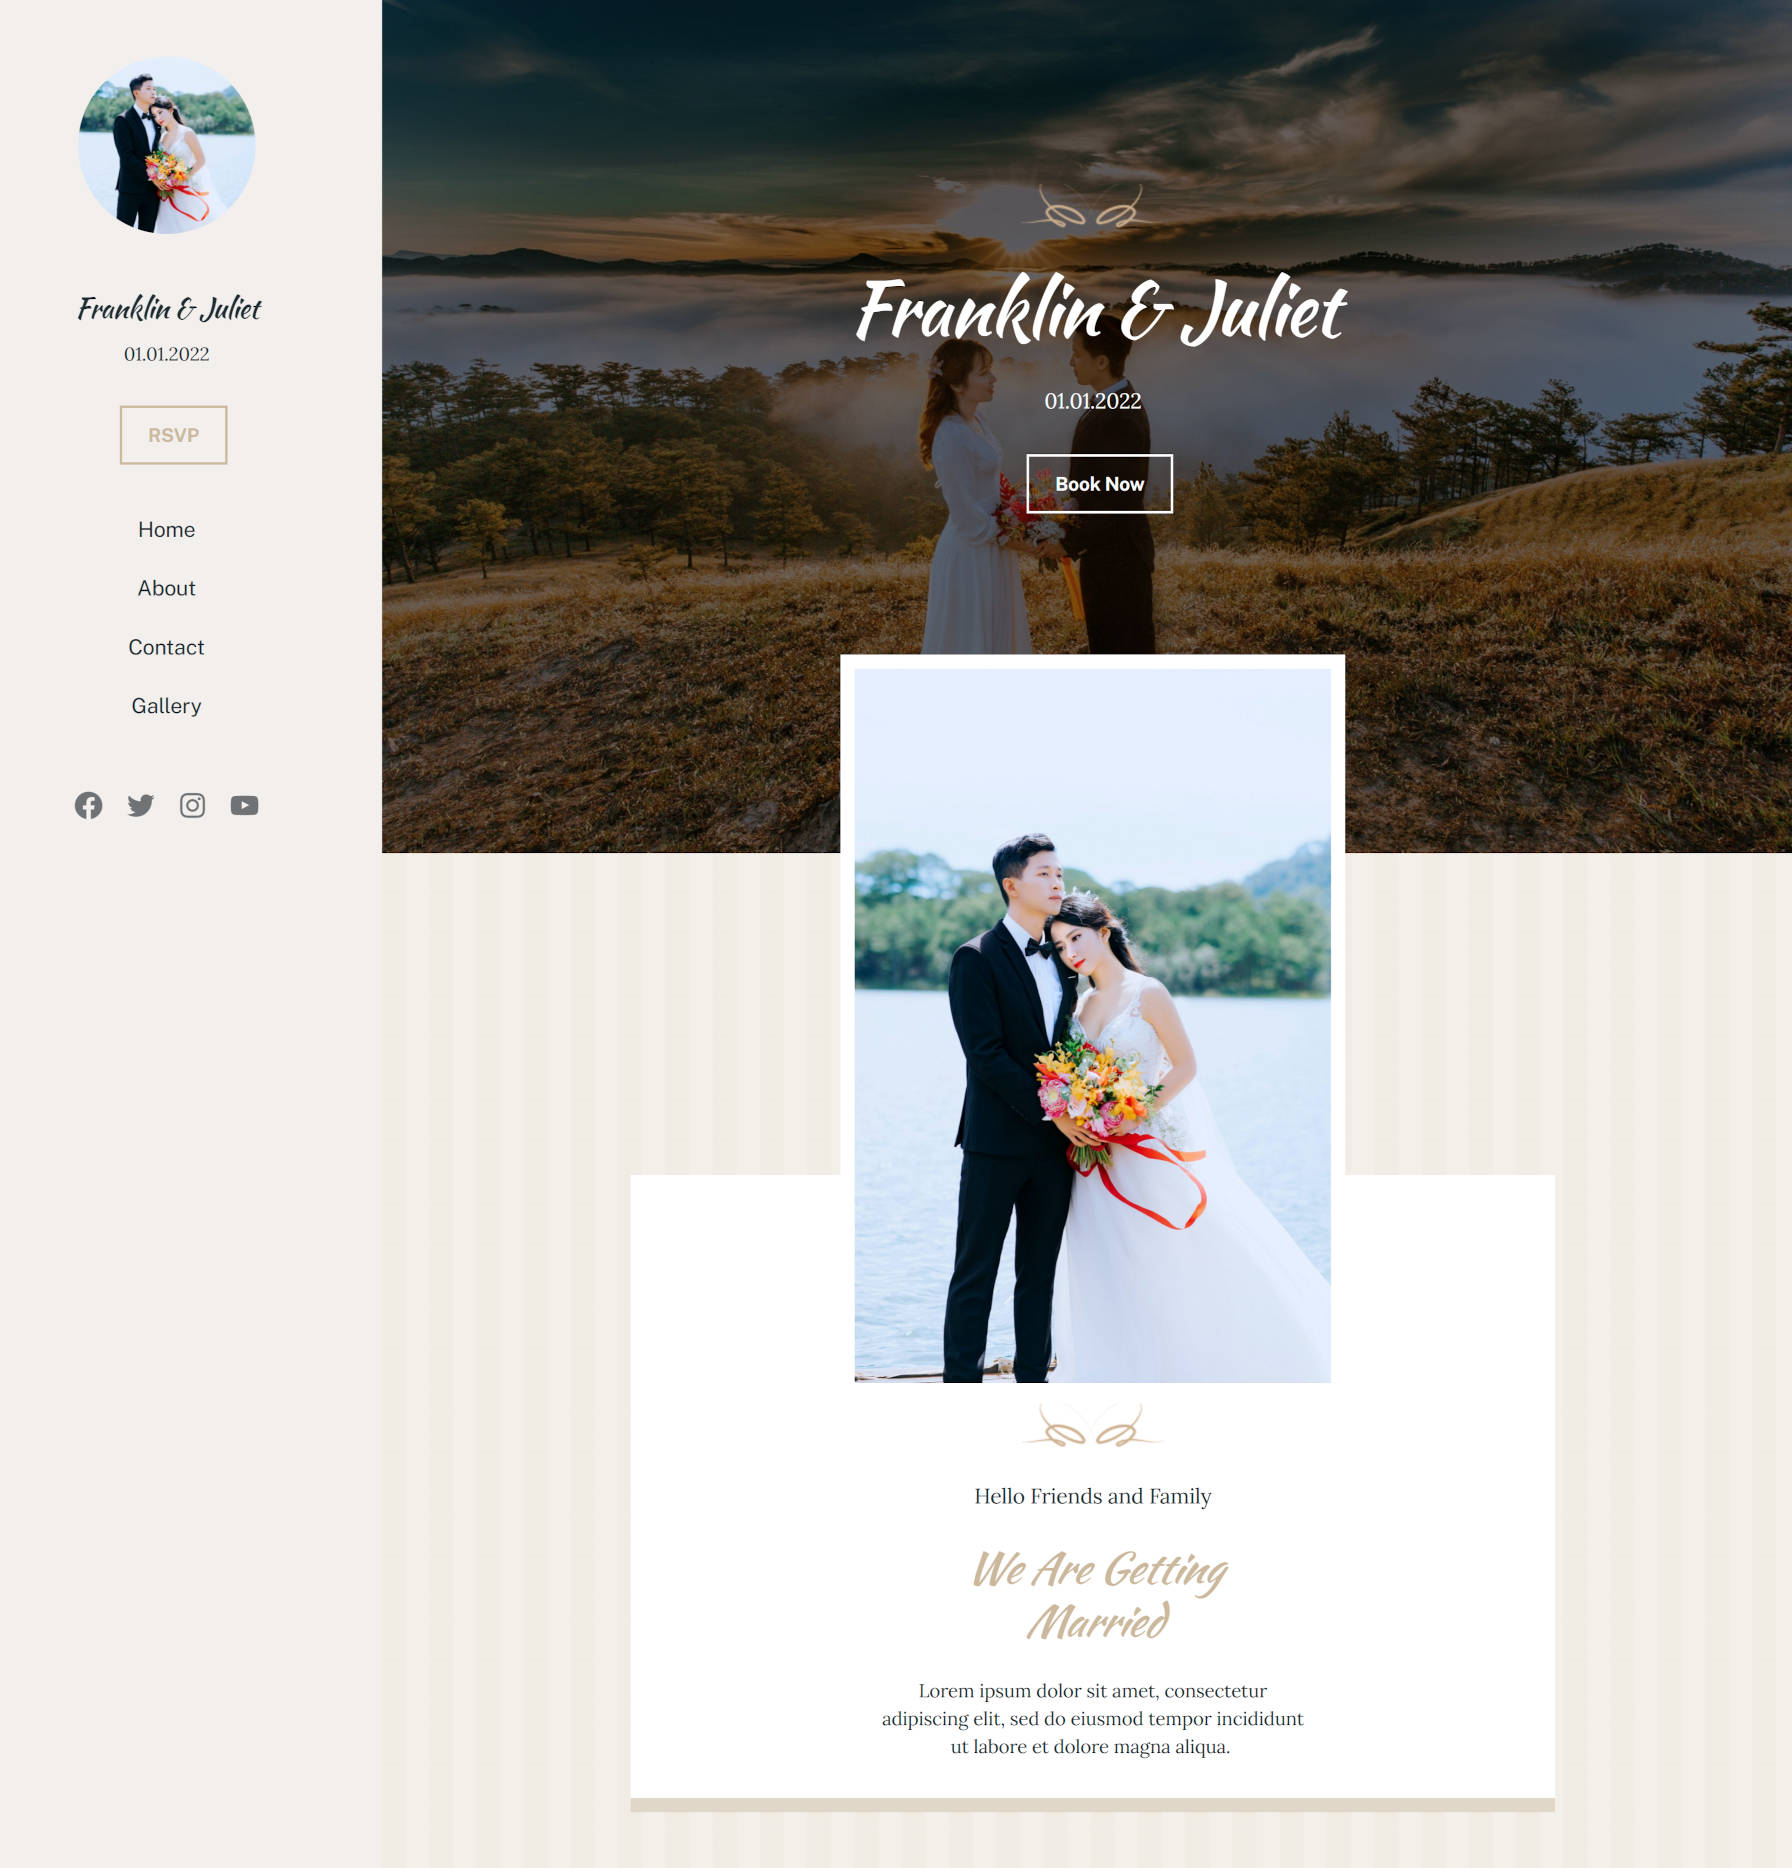 Full wedding page design with sidebar and wedding photos/content on the right.